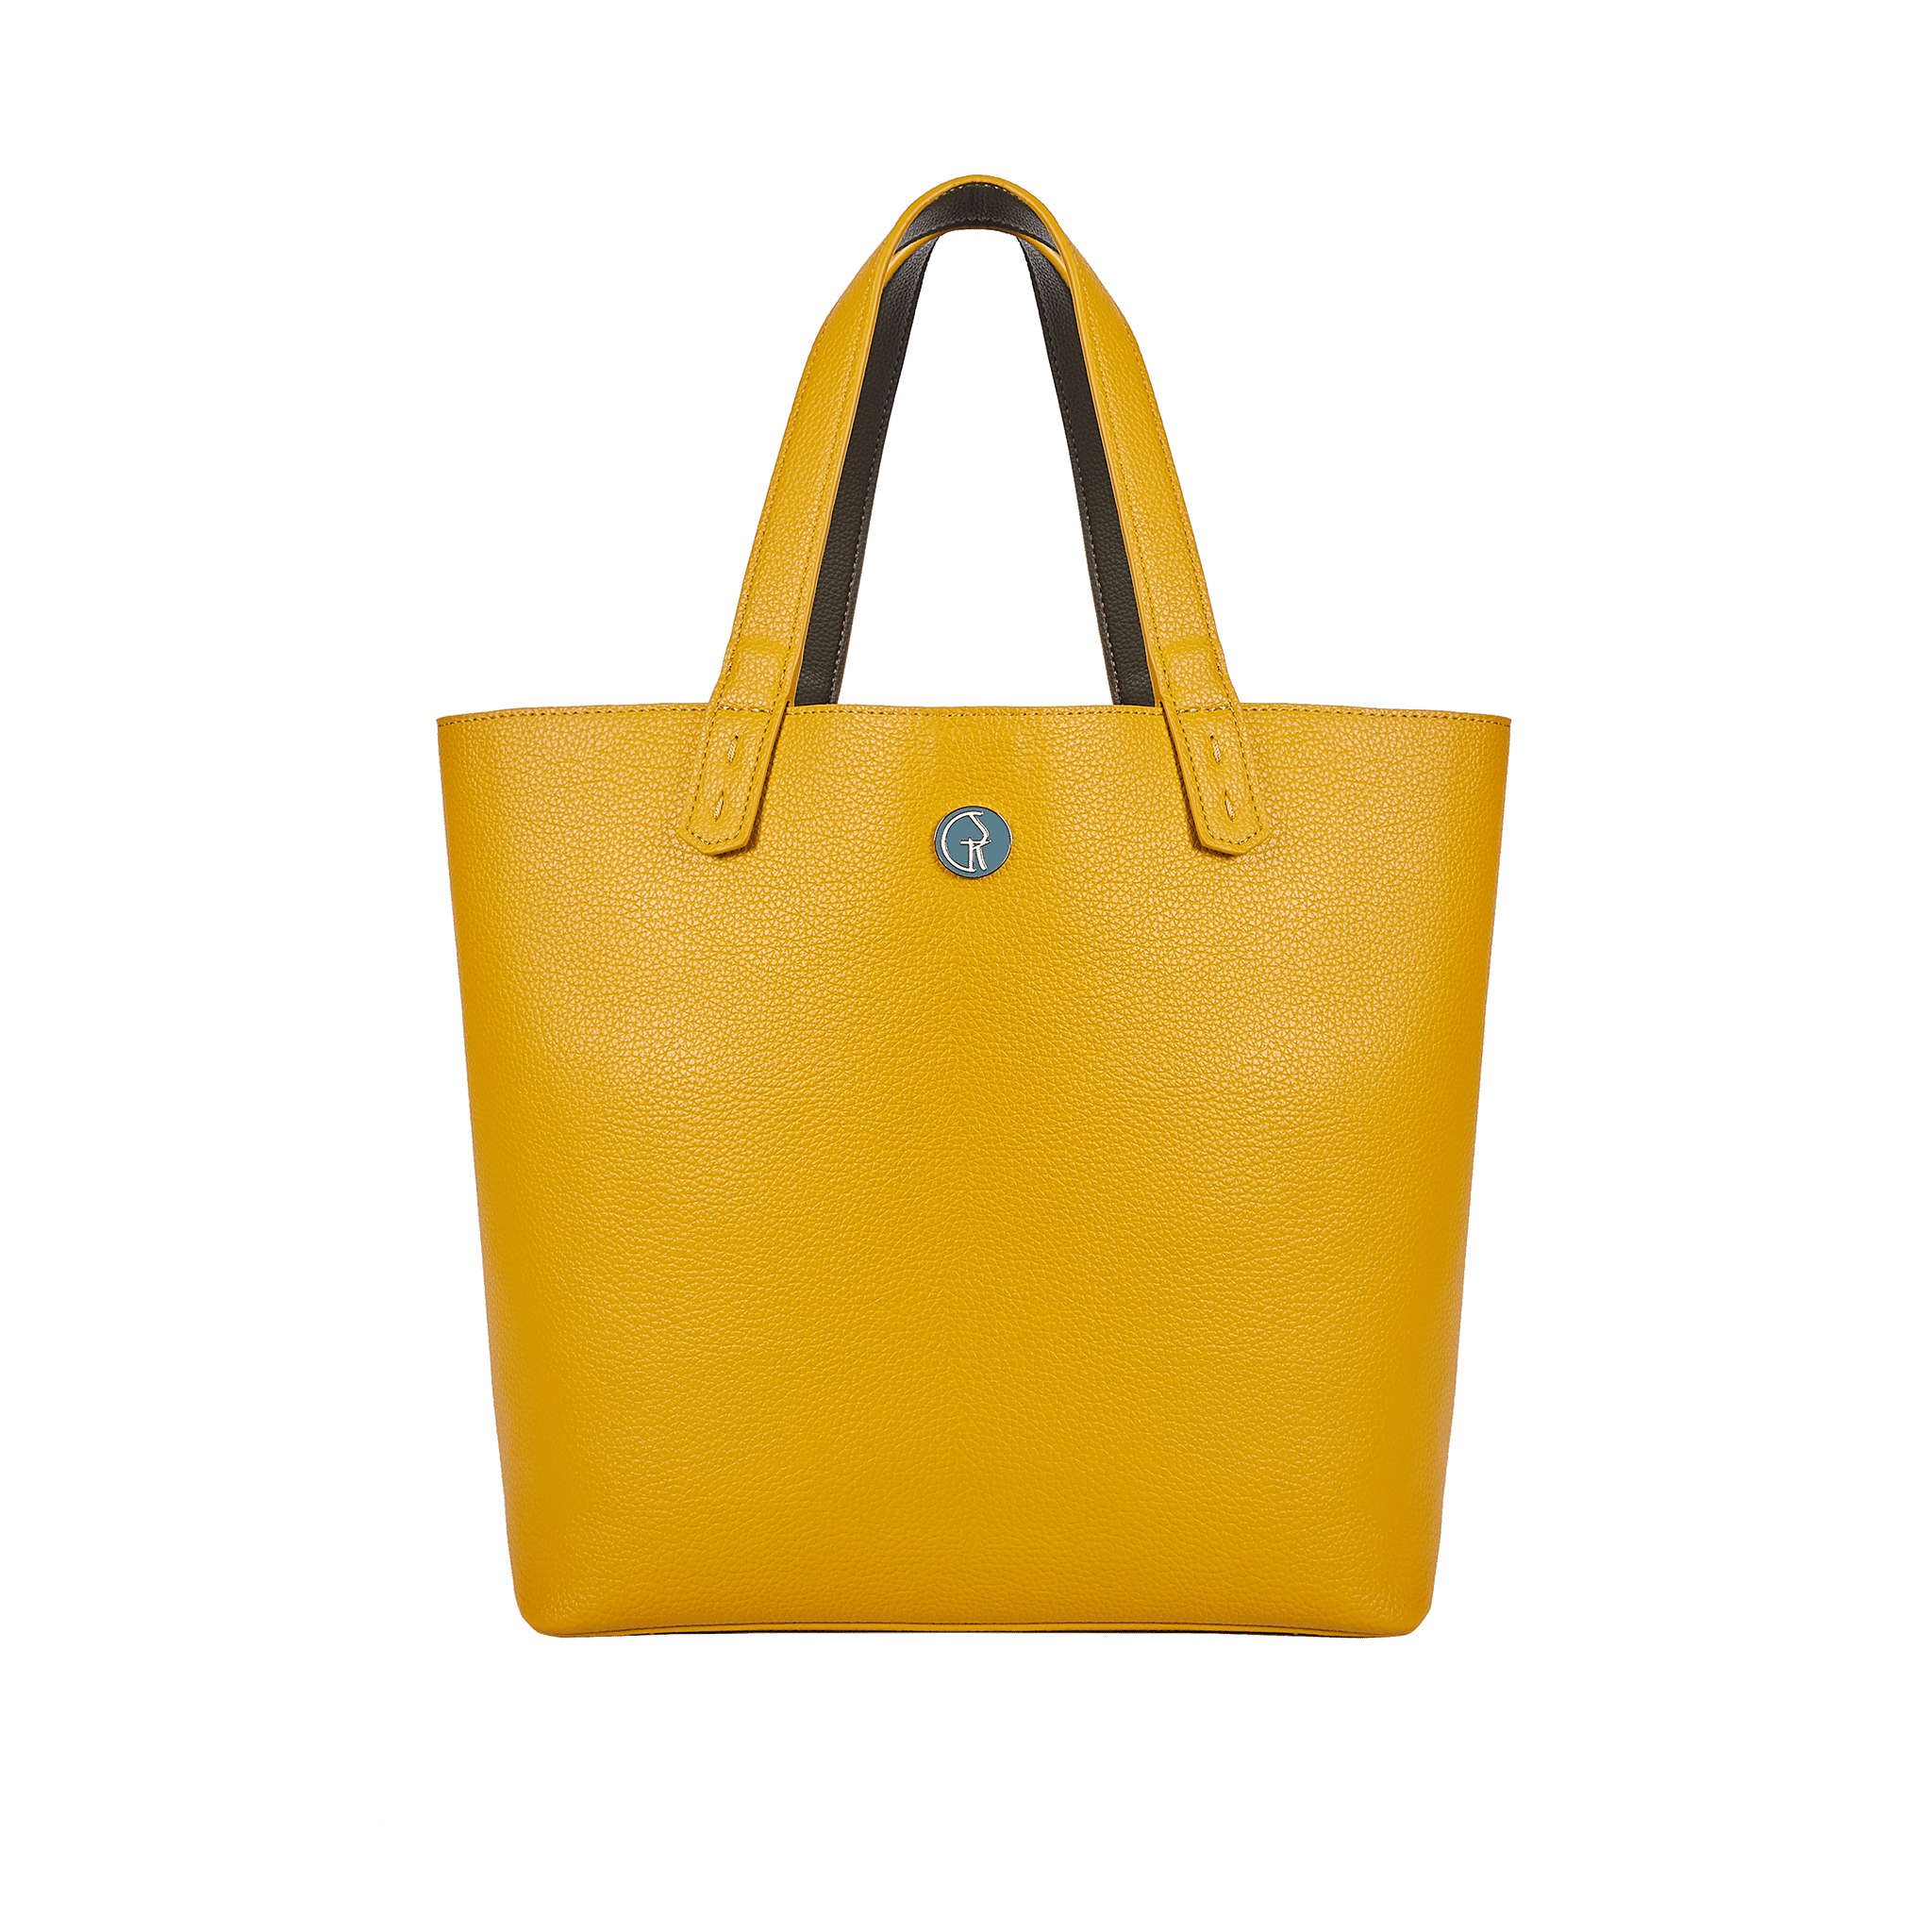 The Morphbag by GSK 3 Vegan Leather Bags in 1   Green Pepper & Mustard